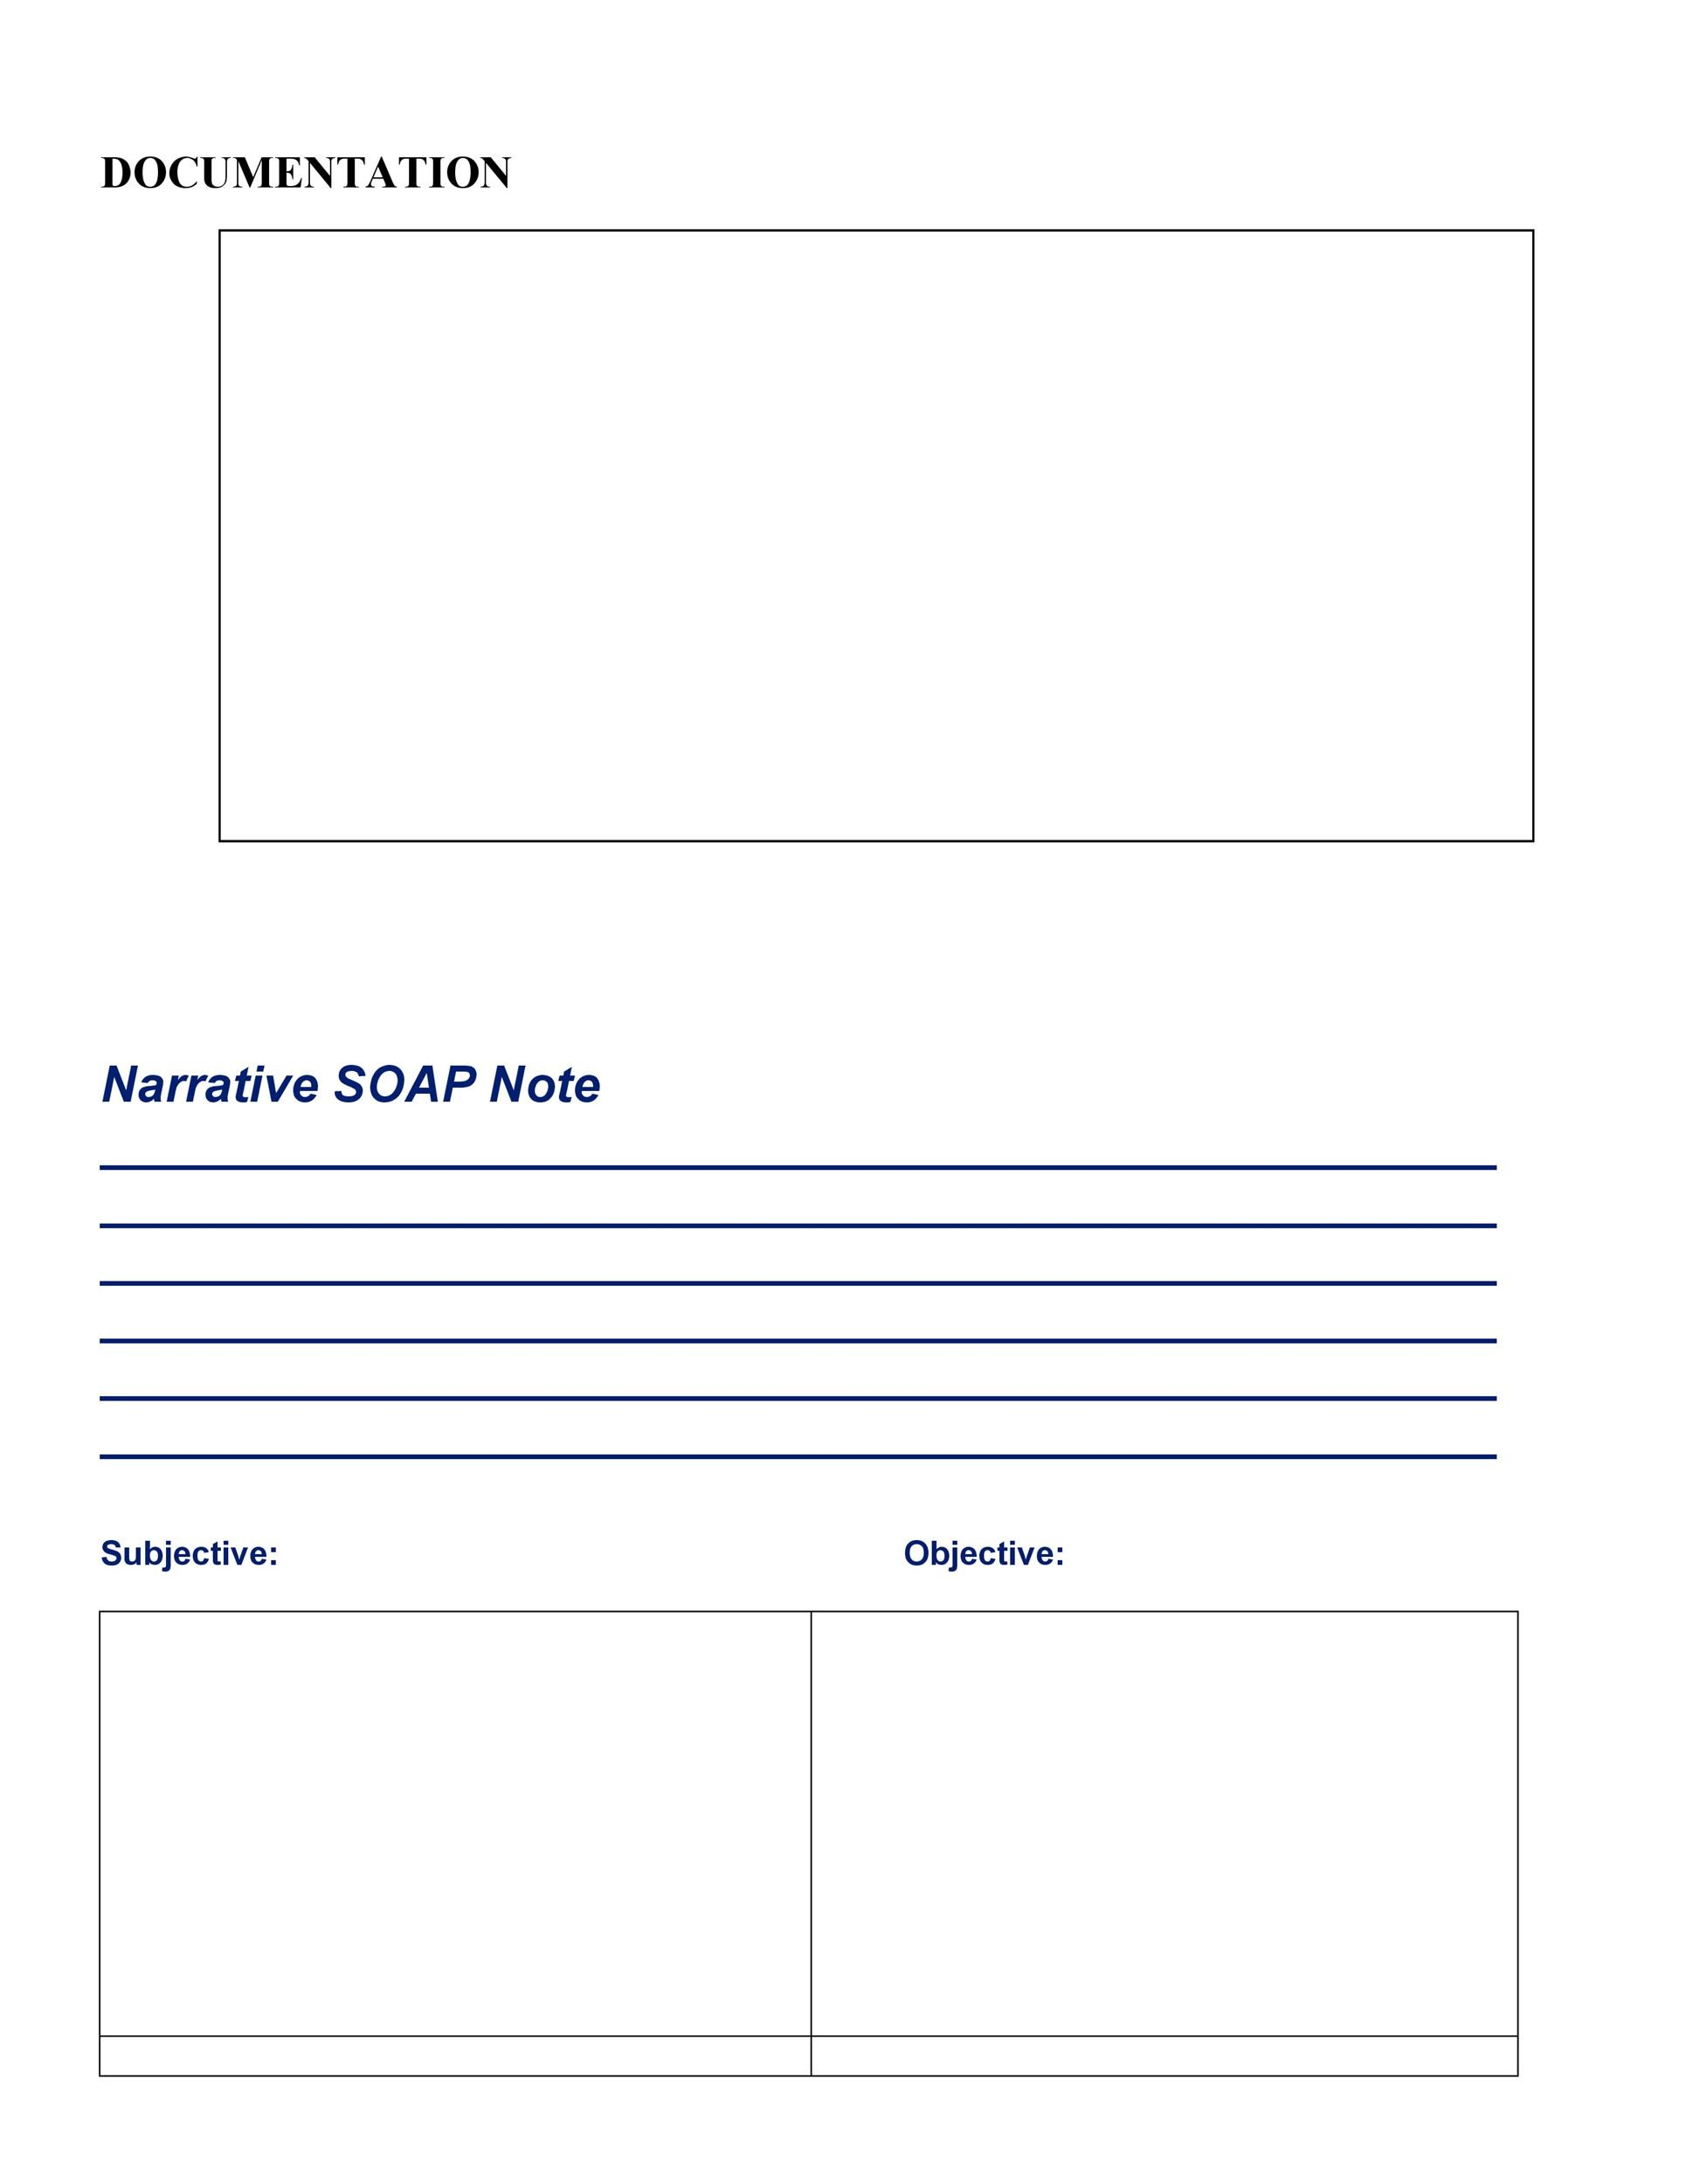 40 Fantastic SOAP Note Examples  Templates - Template Lab - soap documentation